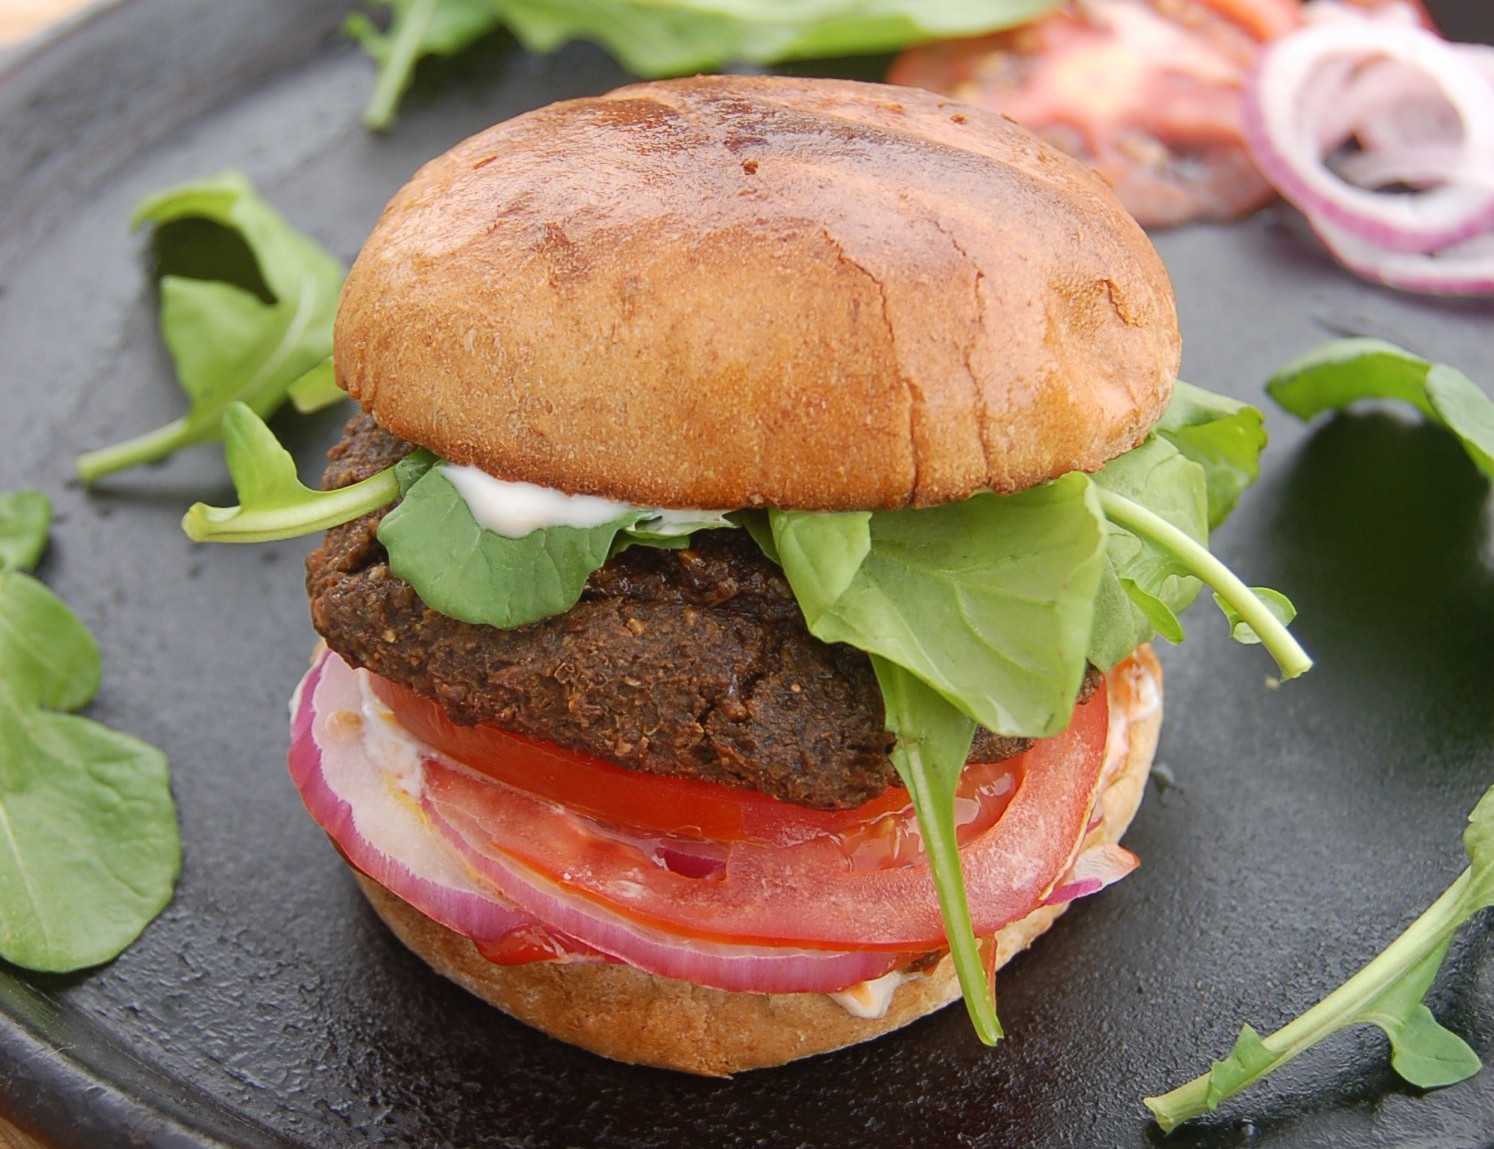 Meatless 'lamb' burger